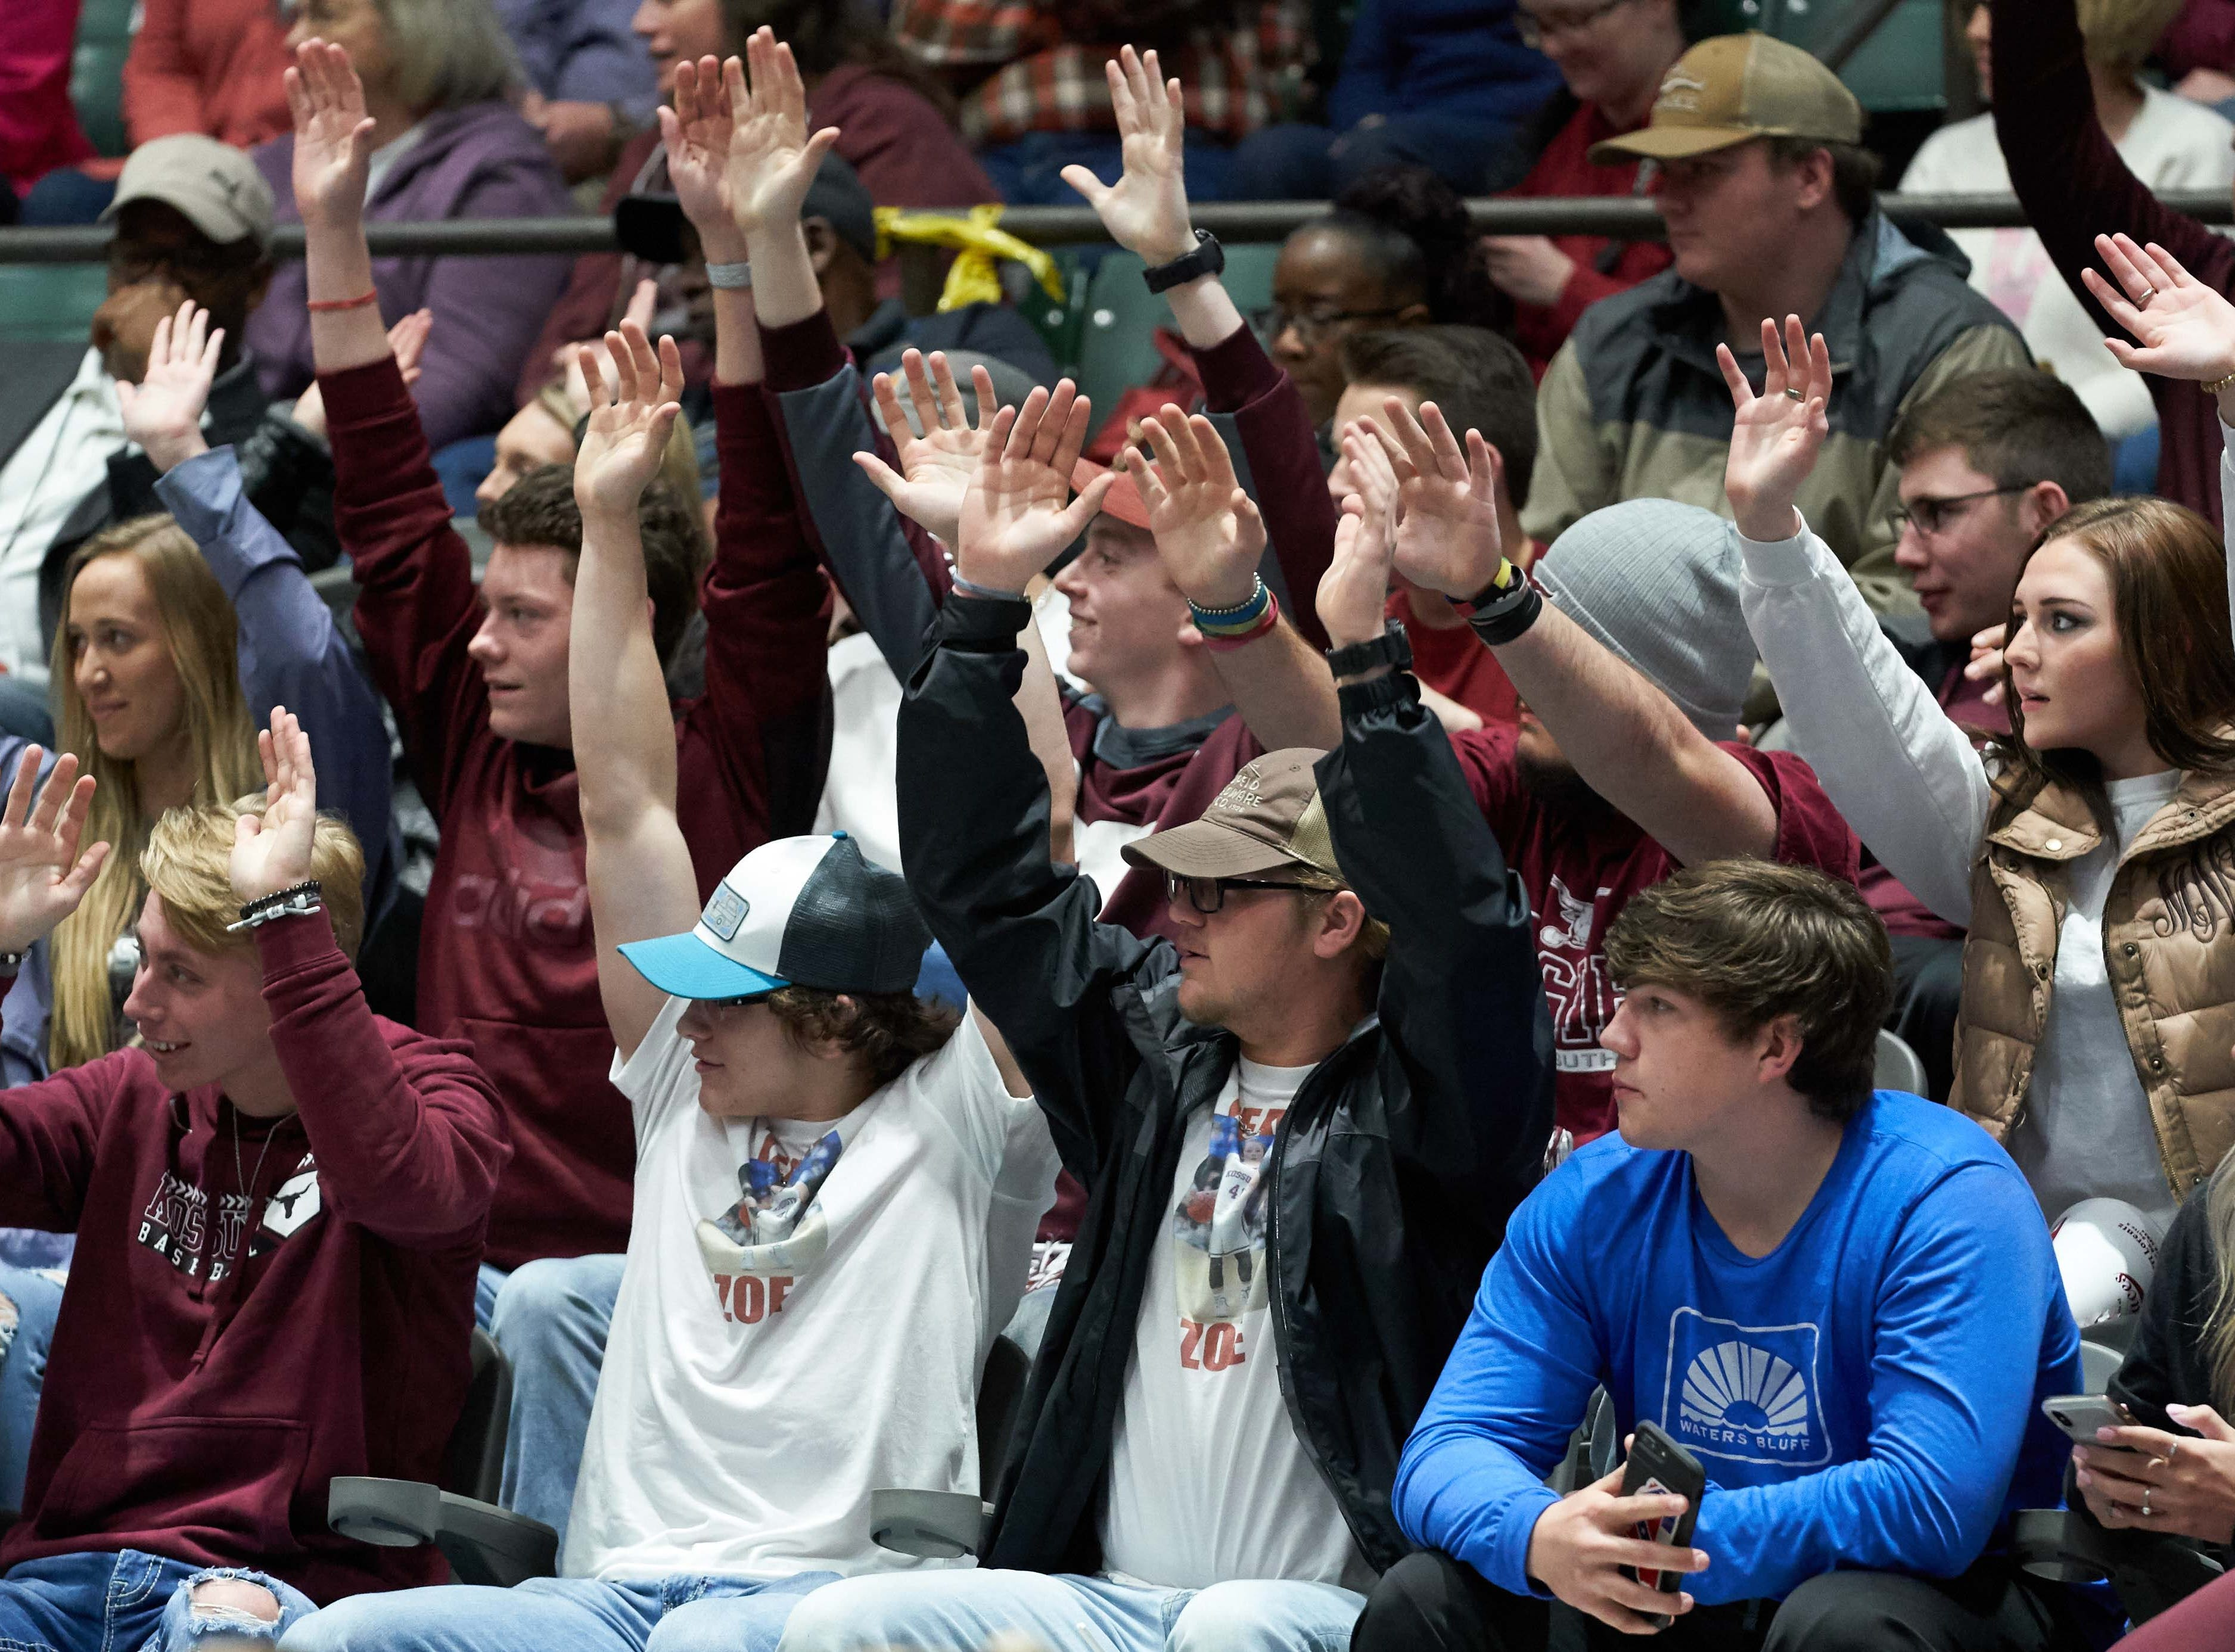 Kossuth fans cheer against Belmont during the MHSAA 3A Girls Basketball Championship Finals held at the Mississippi Coliseum in Jackson, MS, Saturday March 9th, 2019.(Bob Smith)